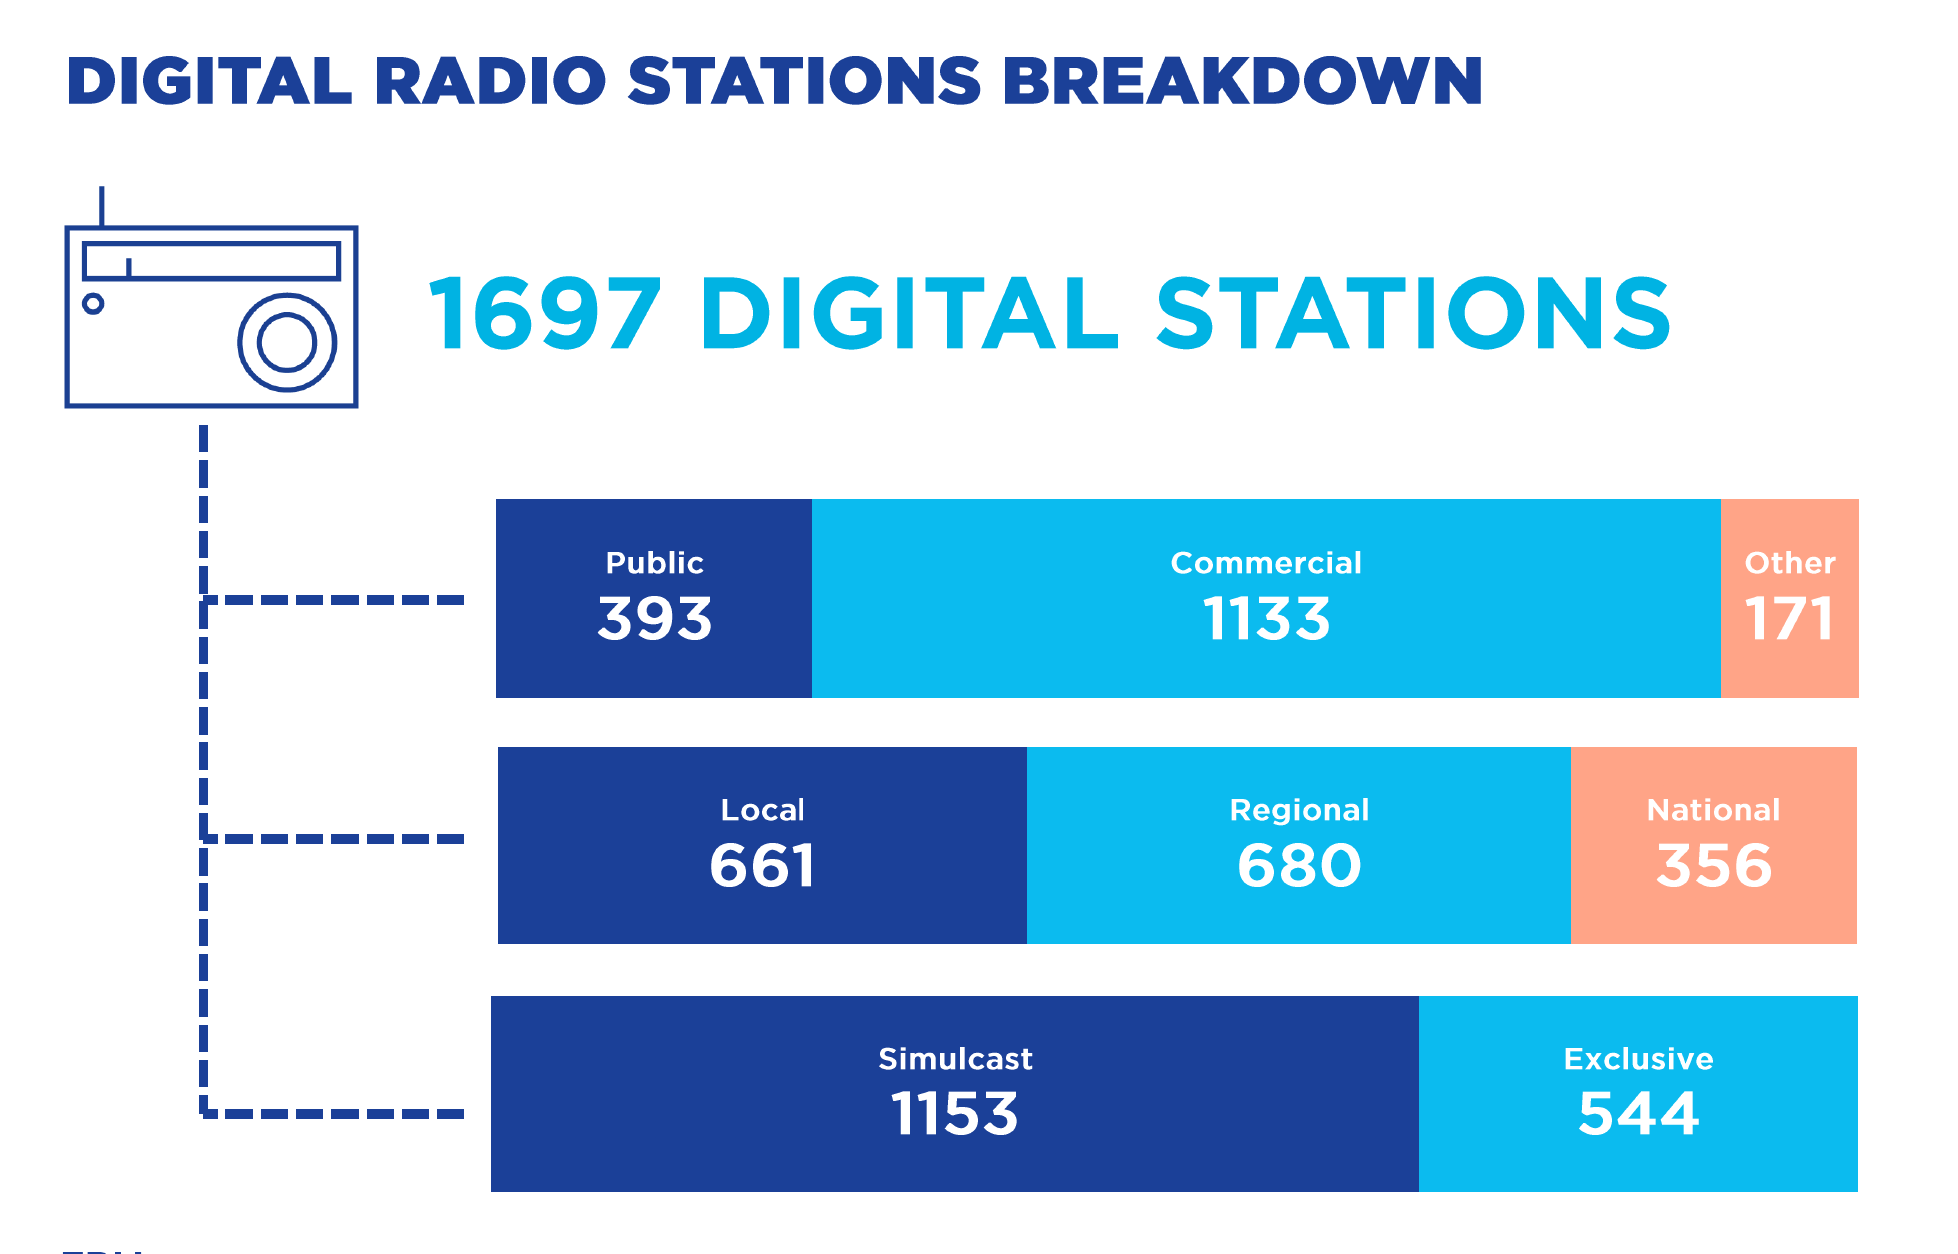 Sources : EBU Media Intelligence Service - Digital Radio 2020